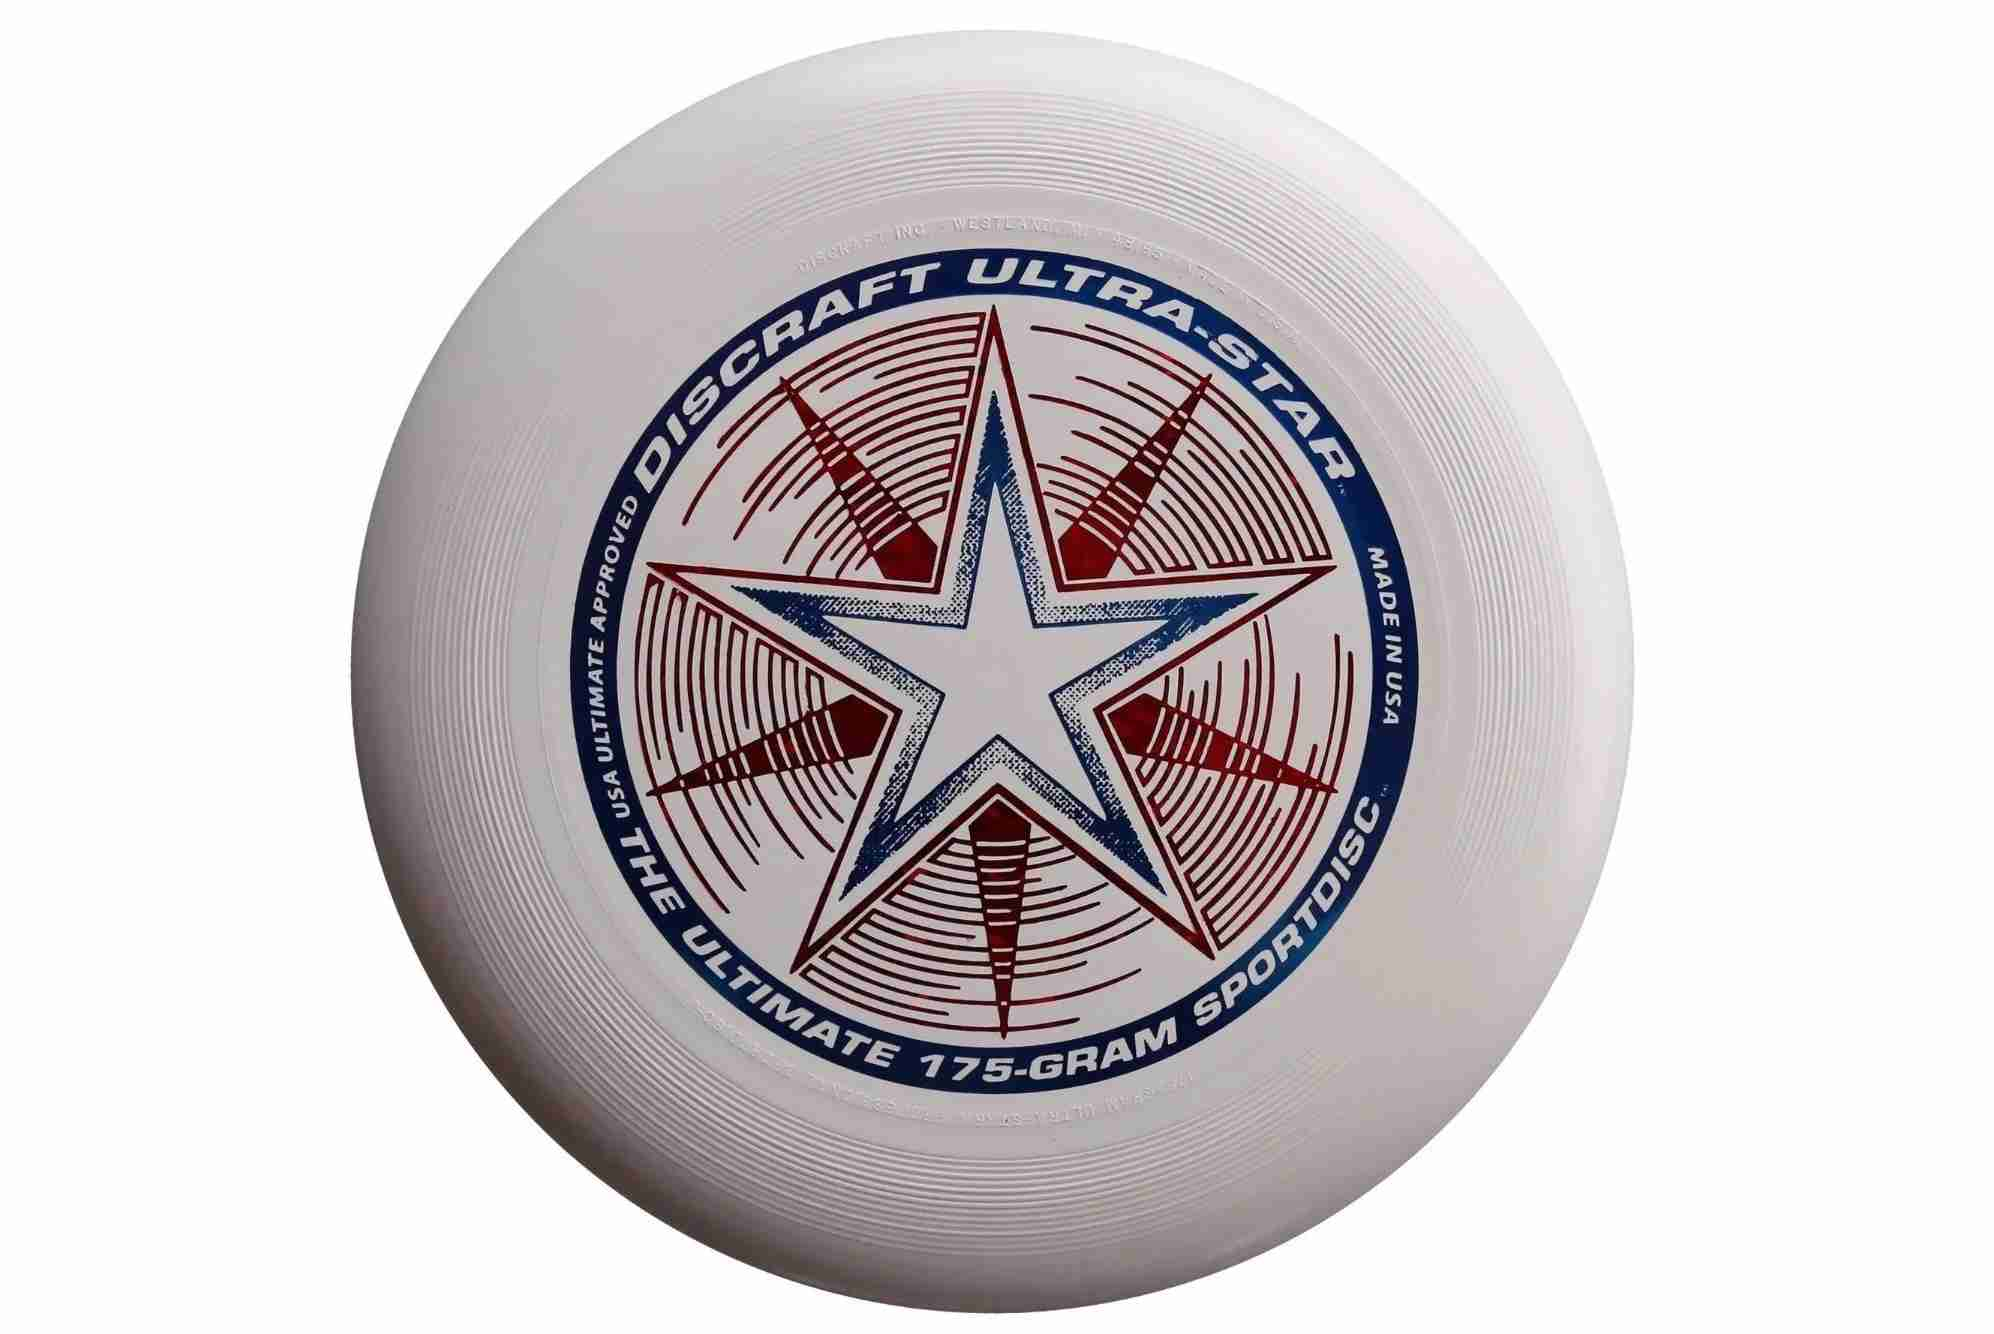 The Discraft Ultra-Star 175g Ultimate Disc. This is the one you want. Image courtesy of Amazon.